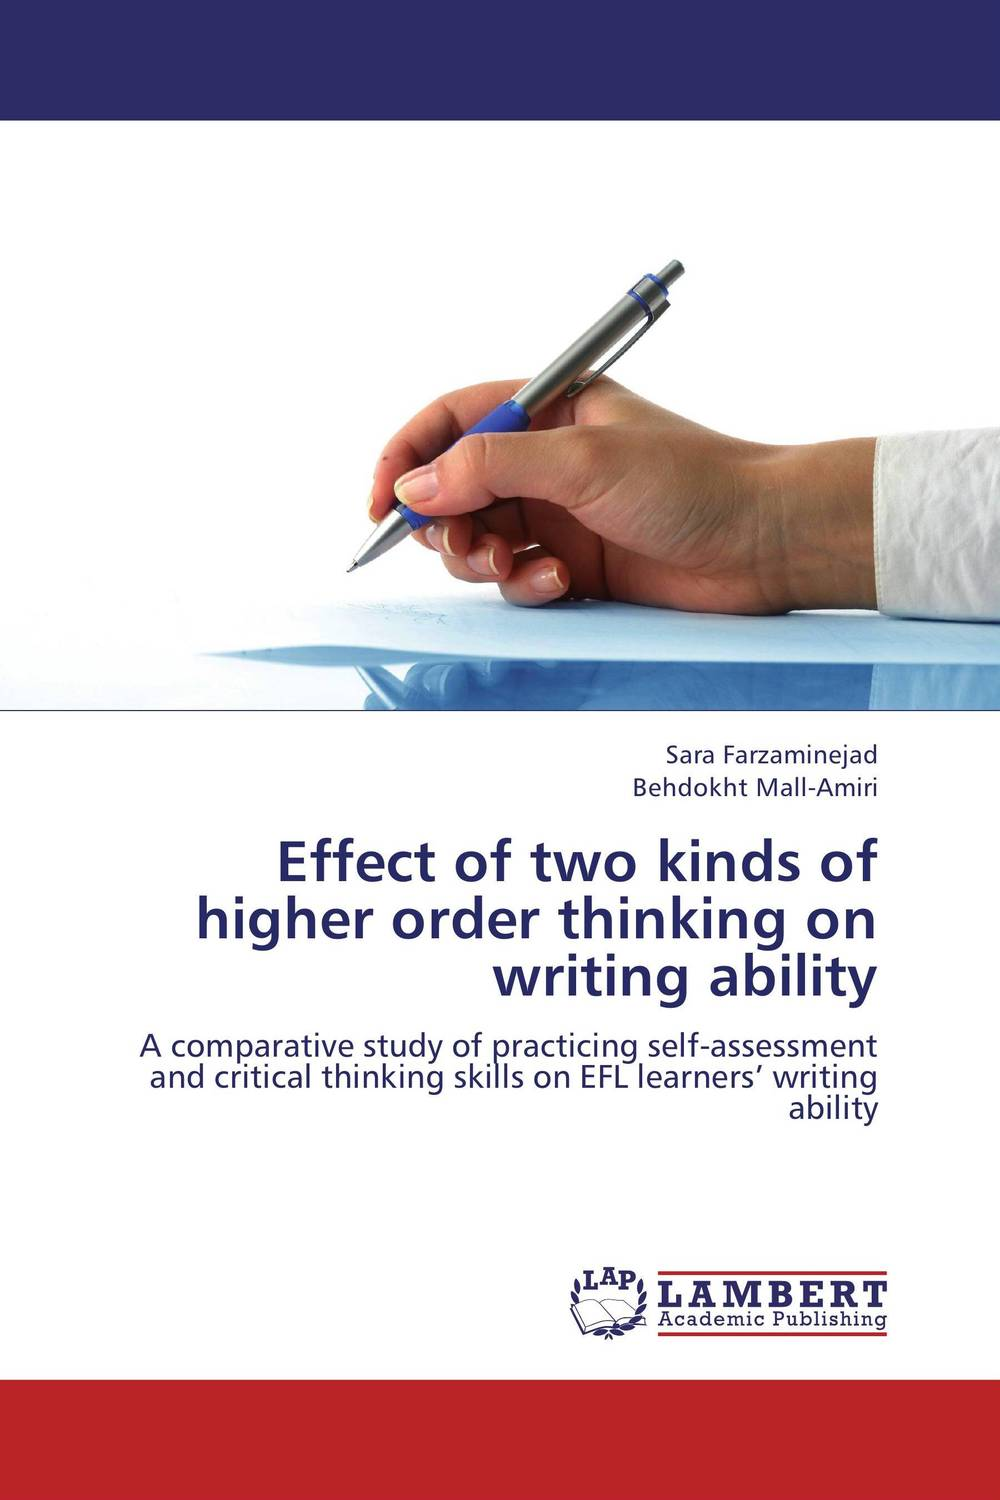 Effect of two kinds of higher order thinking on writing ability